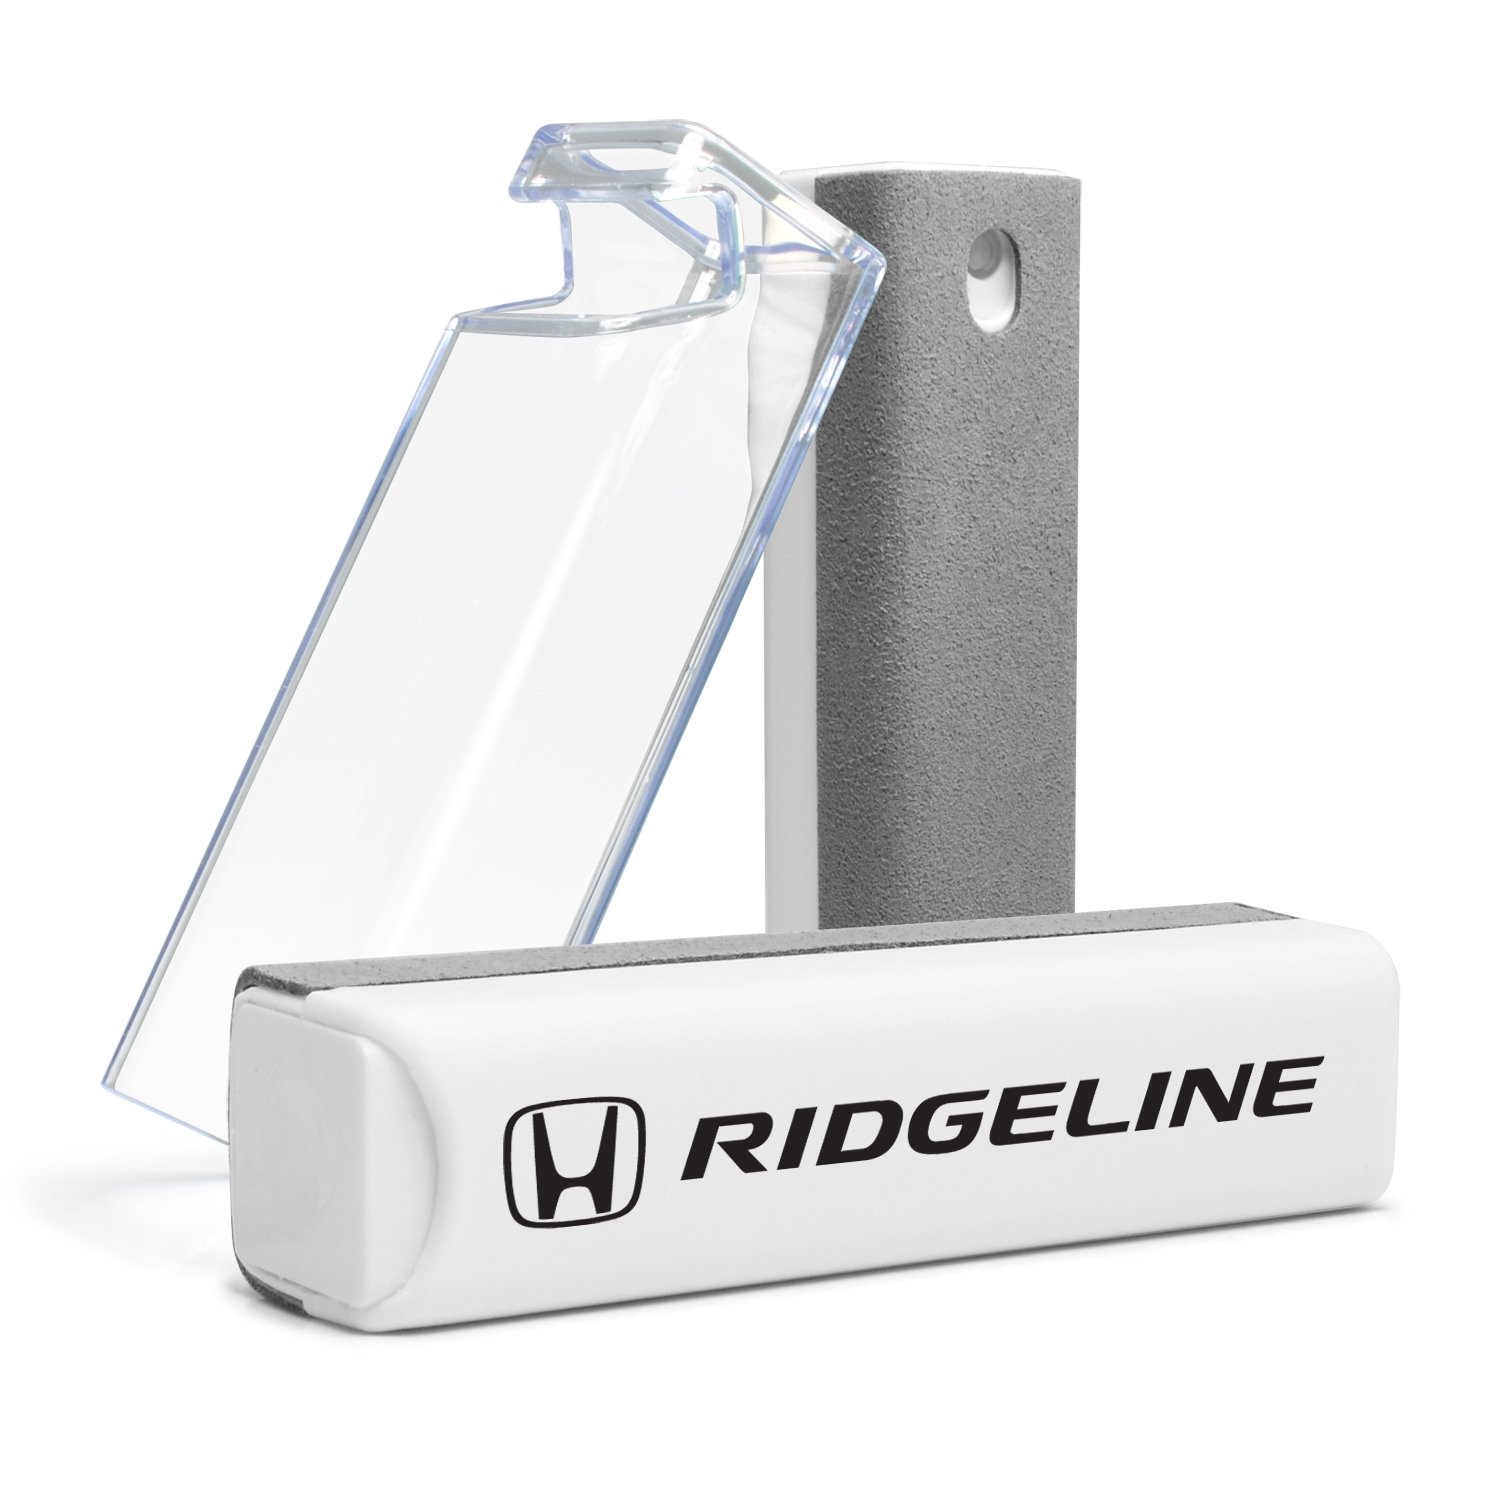 Honda Ridgeline All-in-One Gray Wipe Navigation Screen Cleaner with Clear Cell Phone Stand